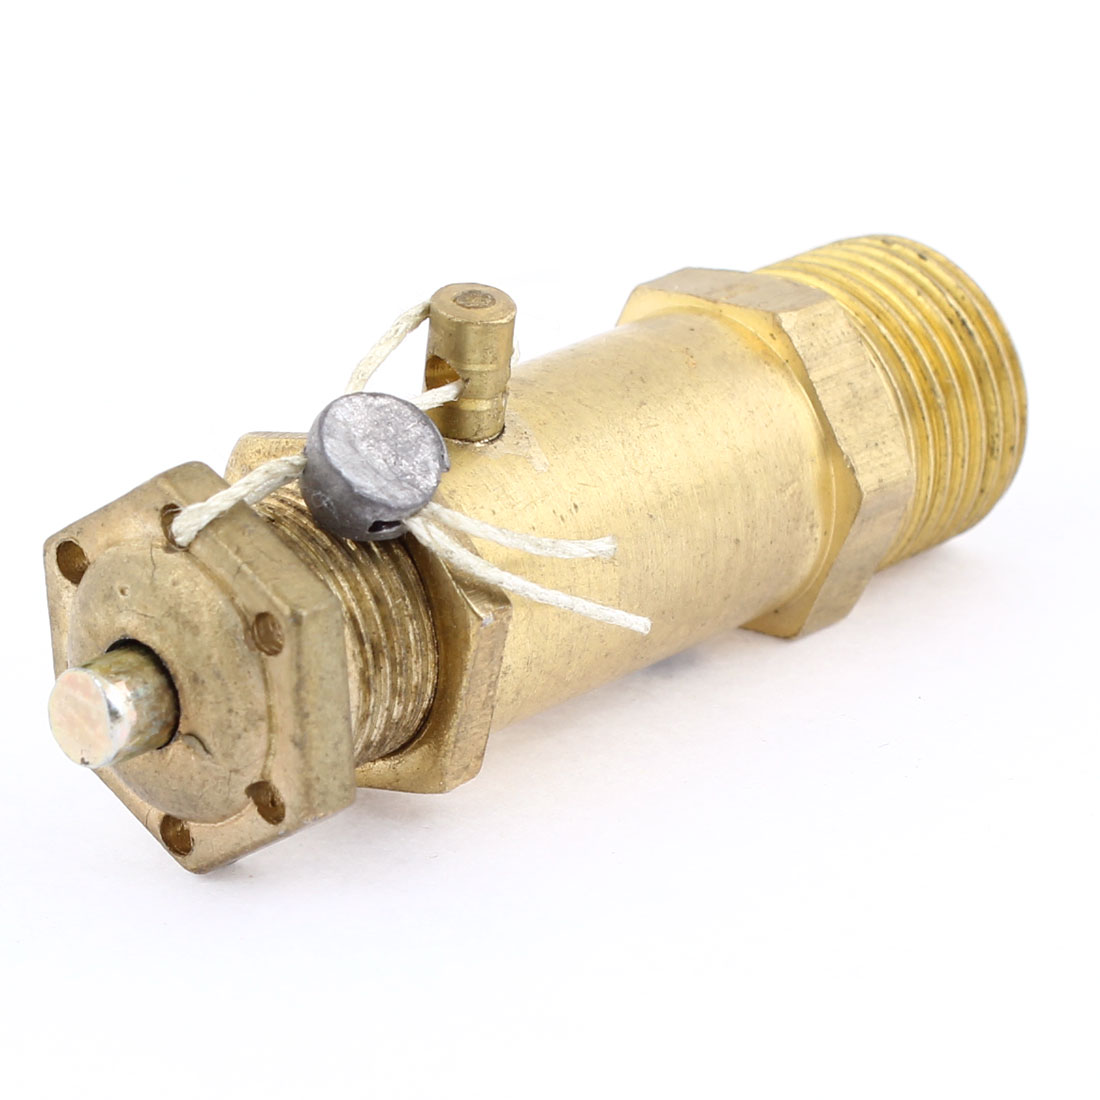 "Air Compressor Spare Part Gold Tone 3/8"" Thread Safety Pressure Relief Valve"